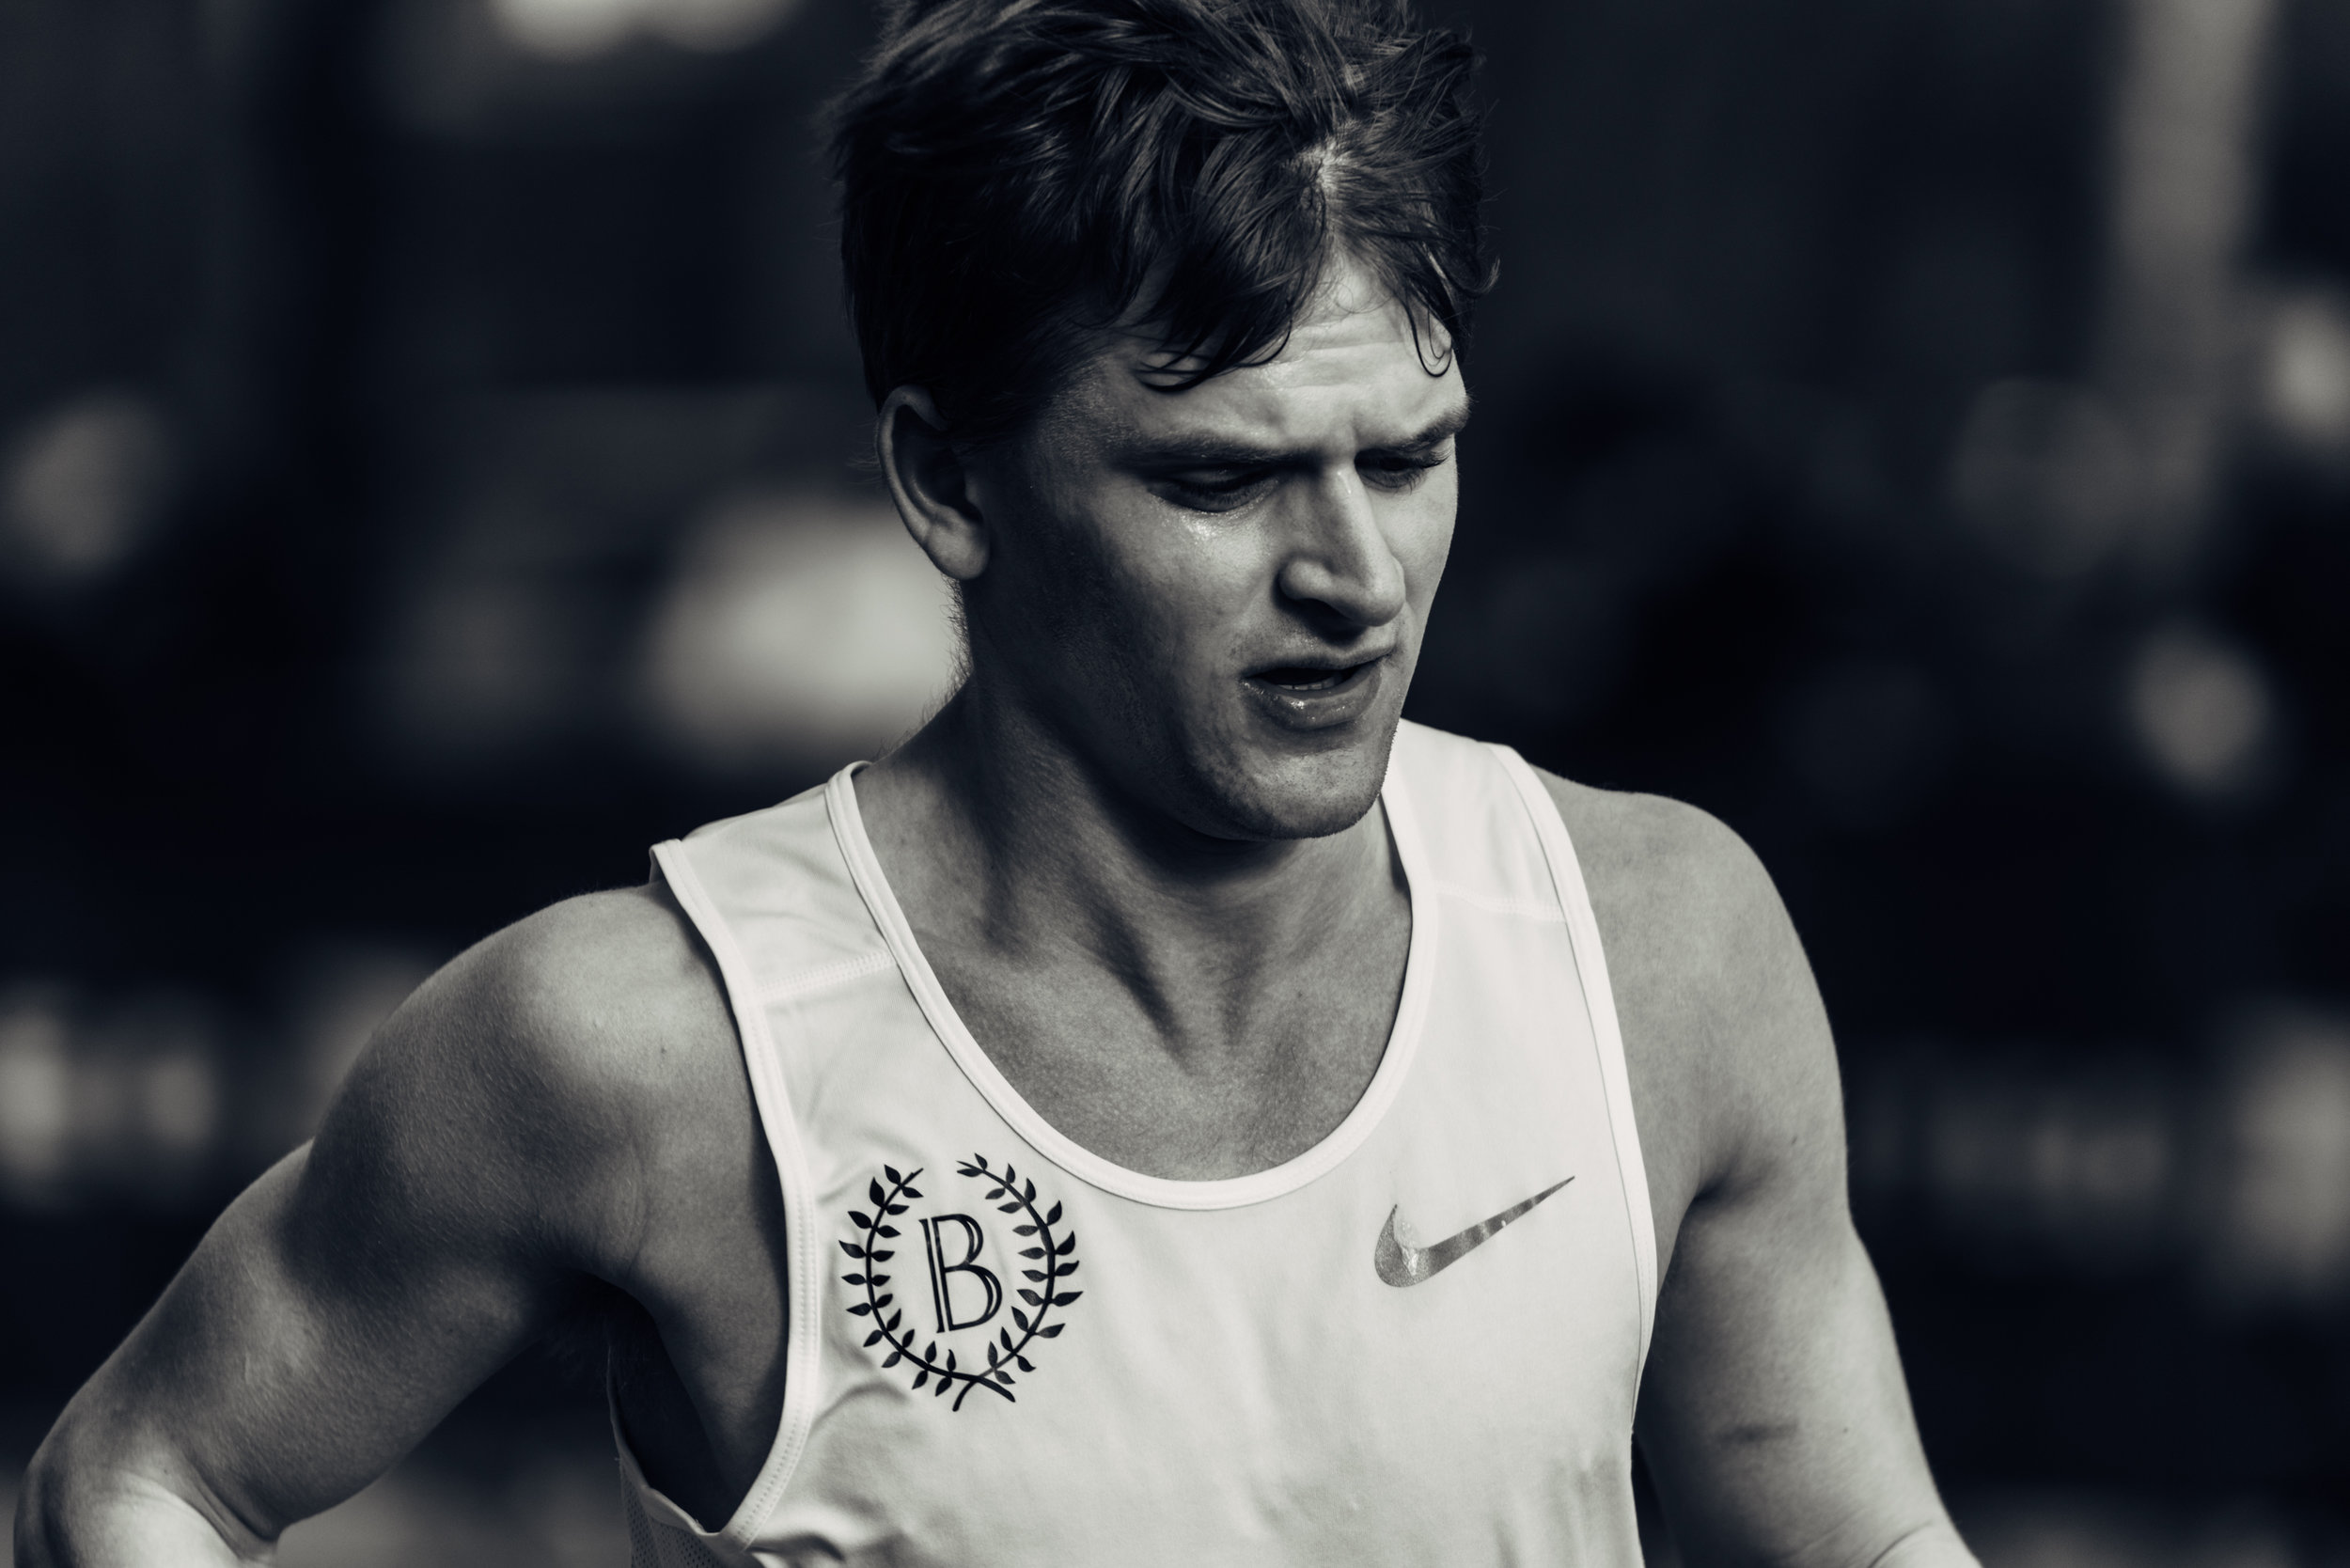 Photo Rhetoric - To Be Determined - United NYC Half Marathon-3018.jpg